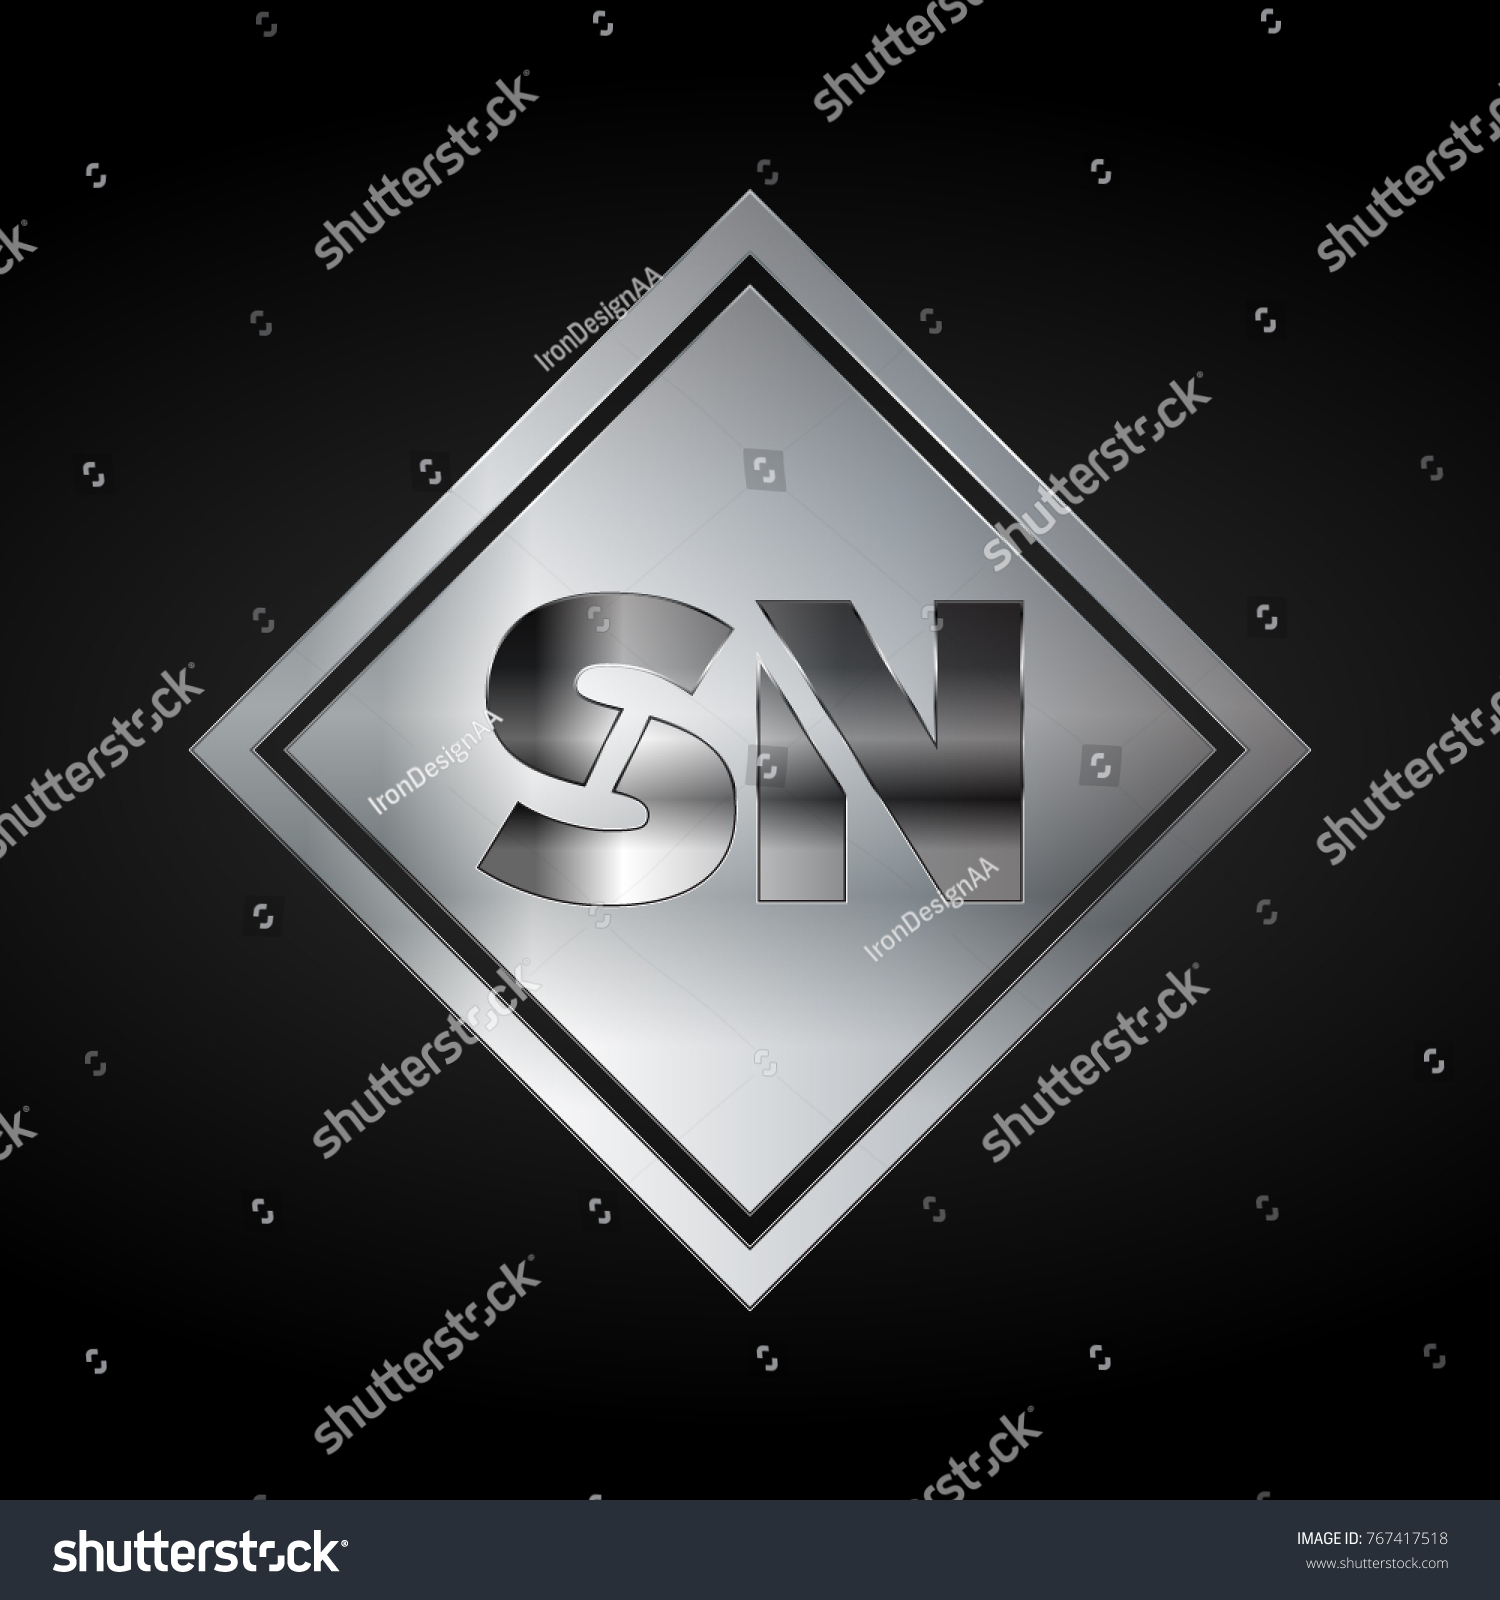 Sn monogram silver logo metal logo stock vector 767417518 sn monogram silver logo metal logo luxury elegant abstract square biocorpaavc Image collections